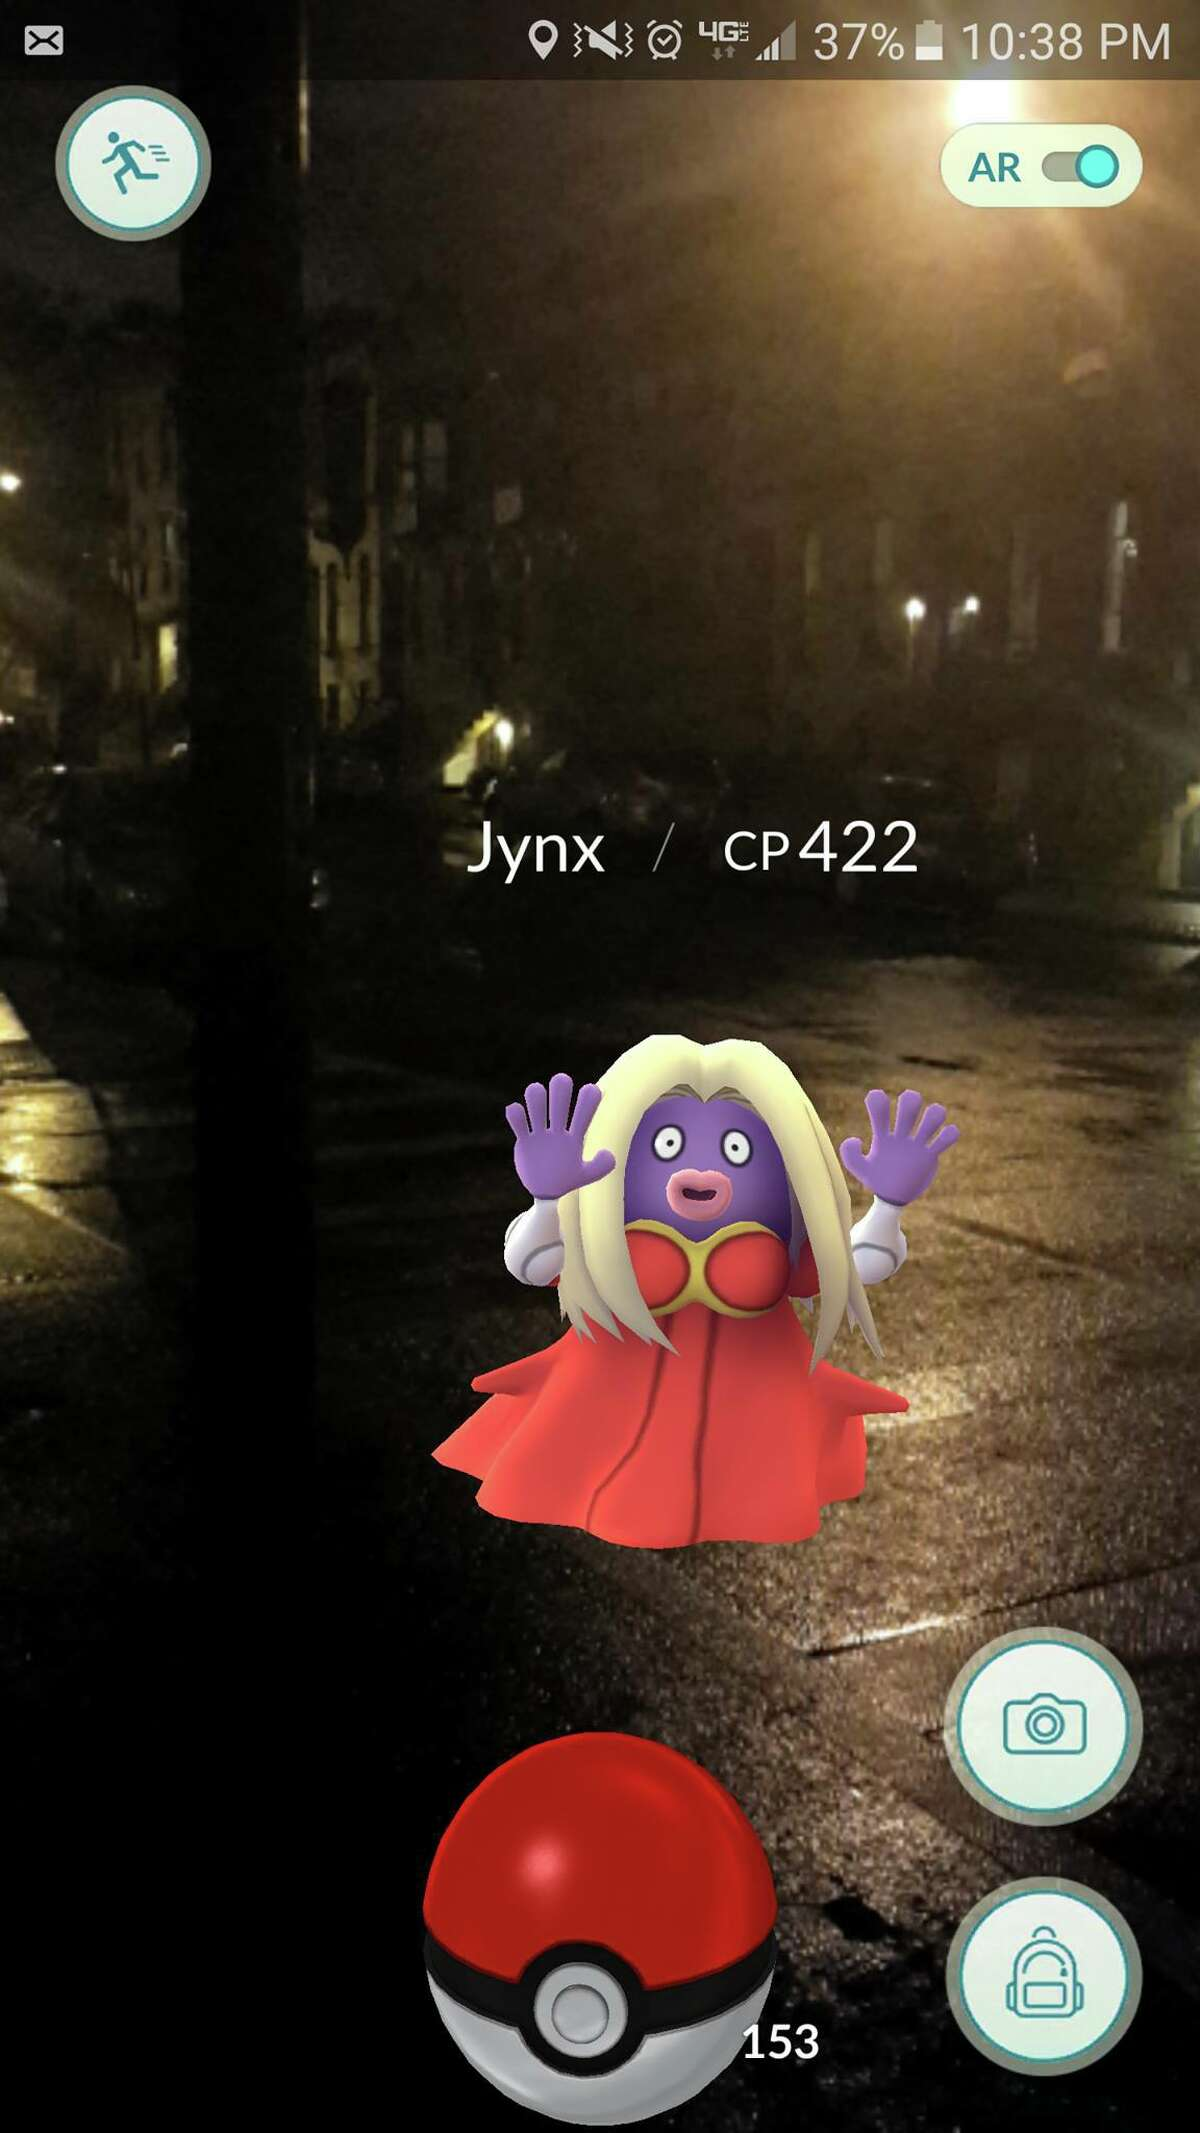 A digital Jynx on the streets of Albany. Pokemon Go layers gameplay onto the physical world. (Courtesy Photo).